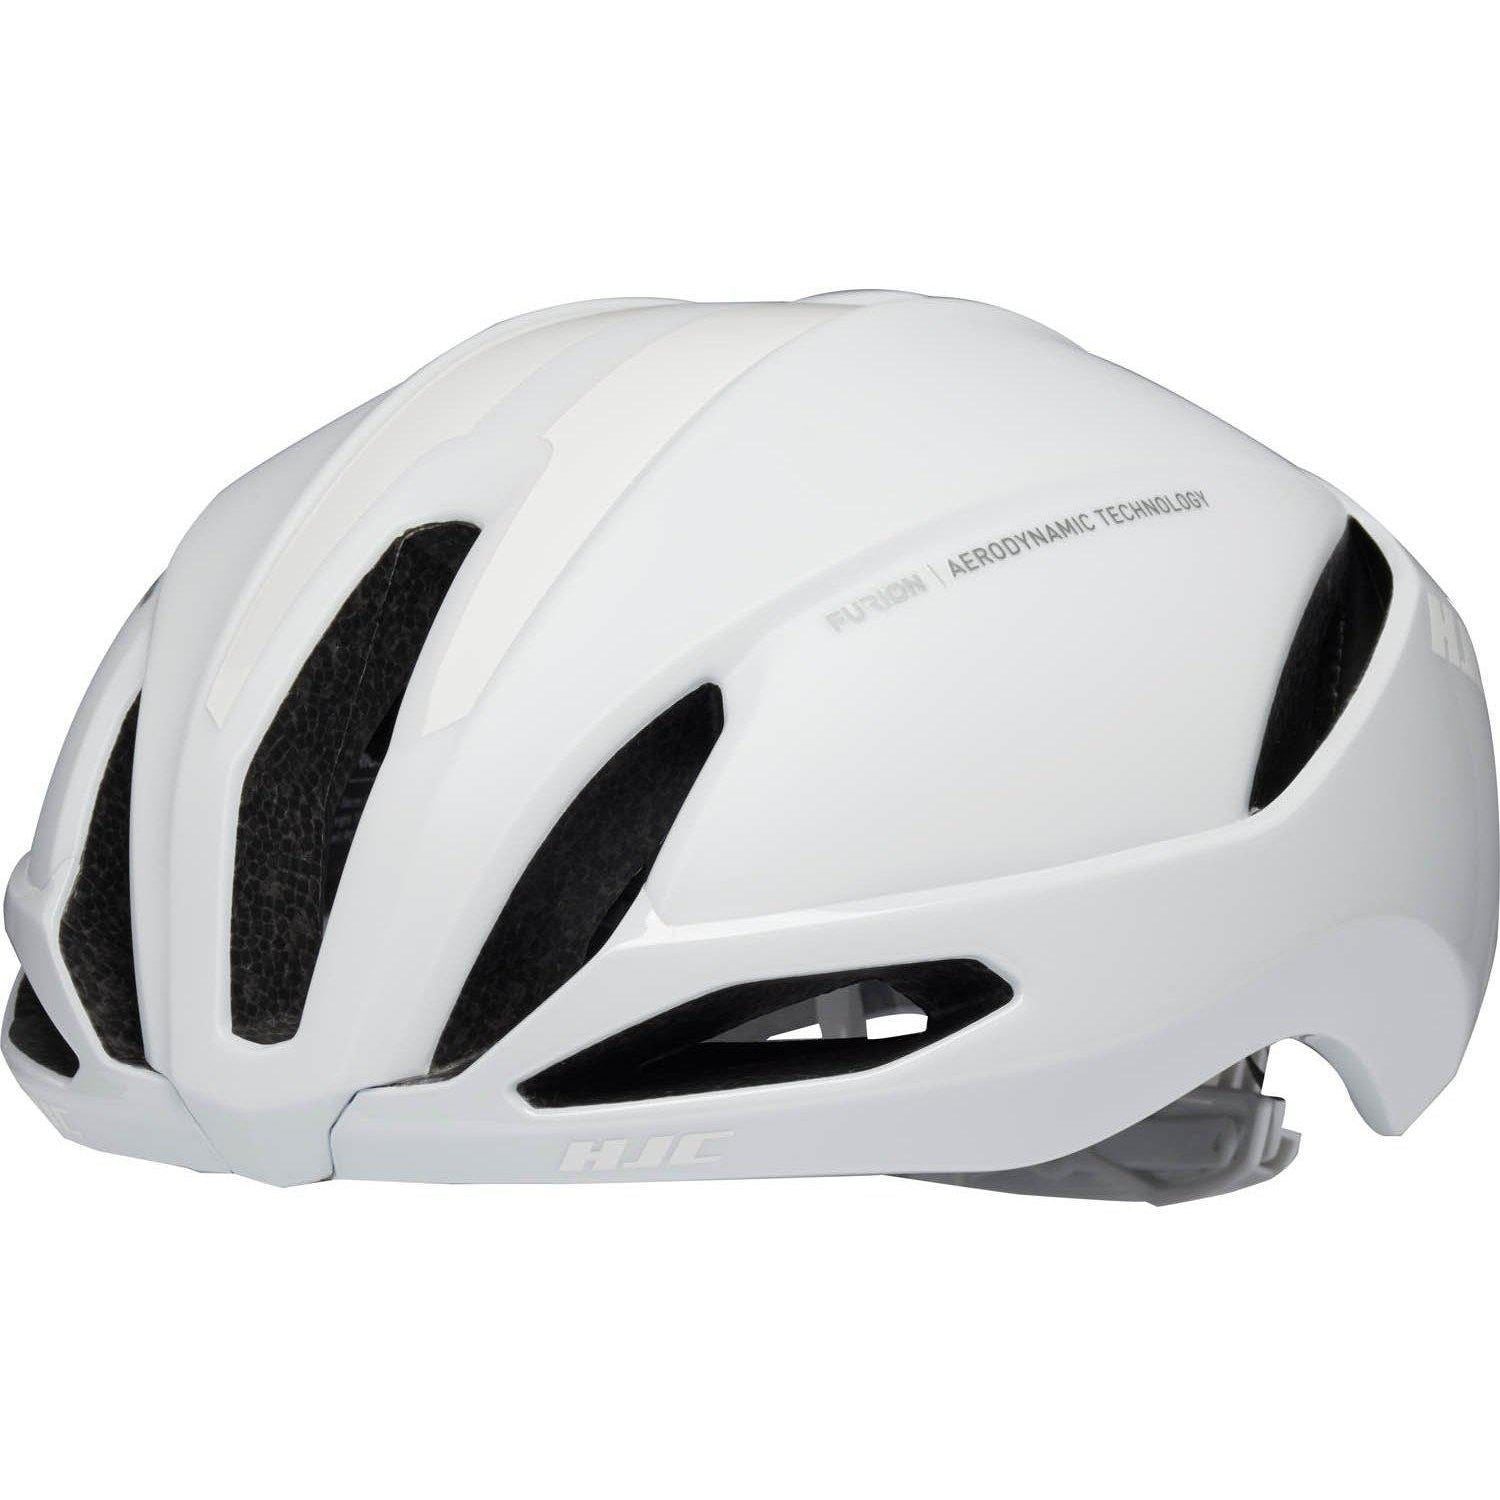 HJC-HJC Furion 2.0 Road Cycling Helmet-White-S-HJC81219001-saddleback-elite-performance-cycling